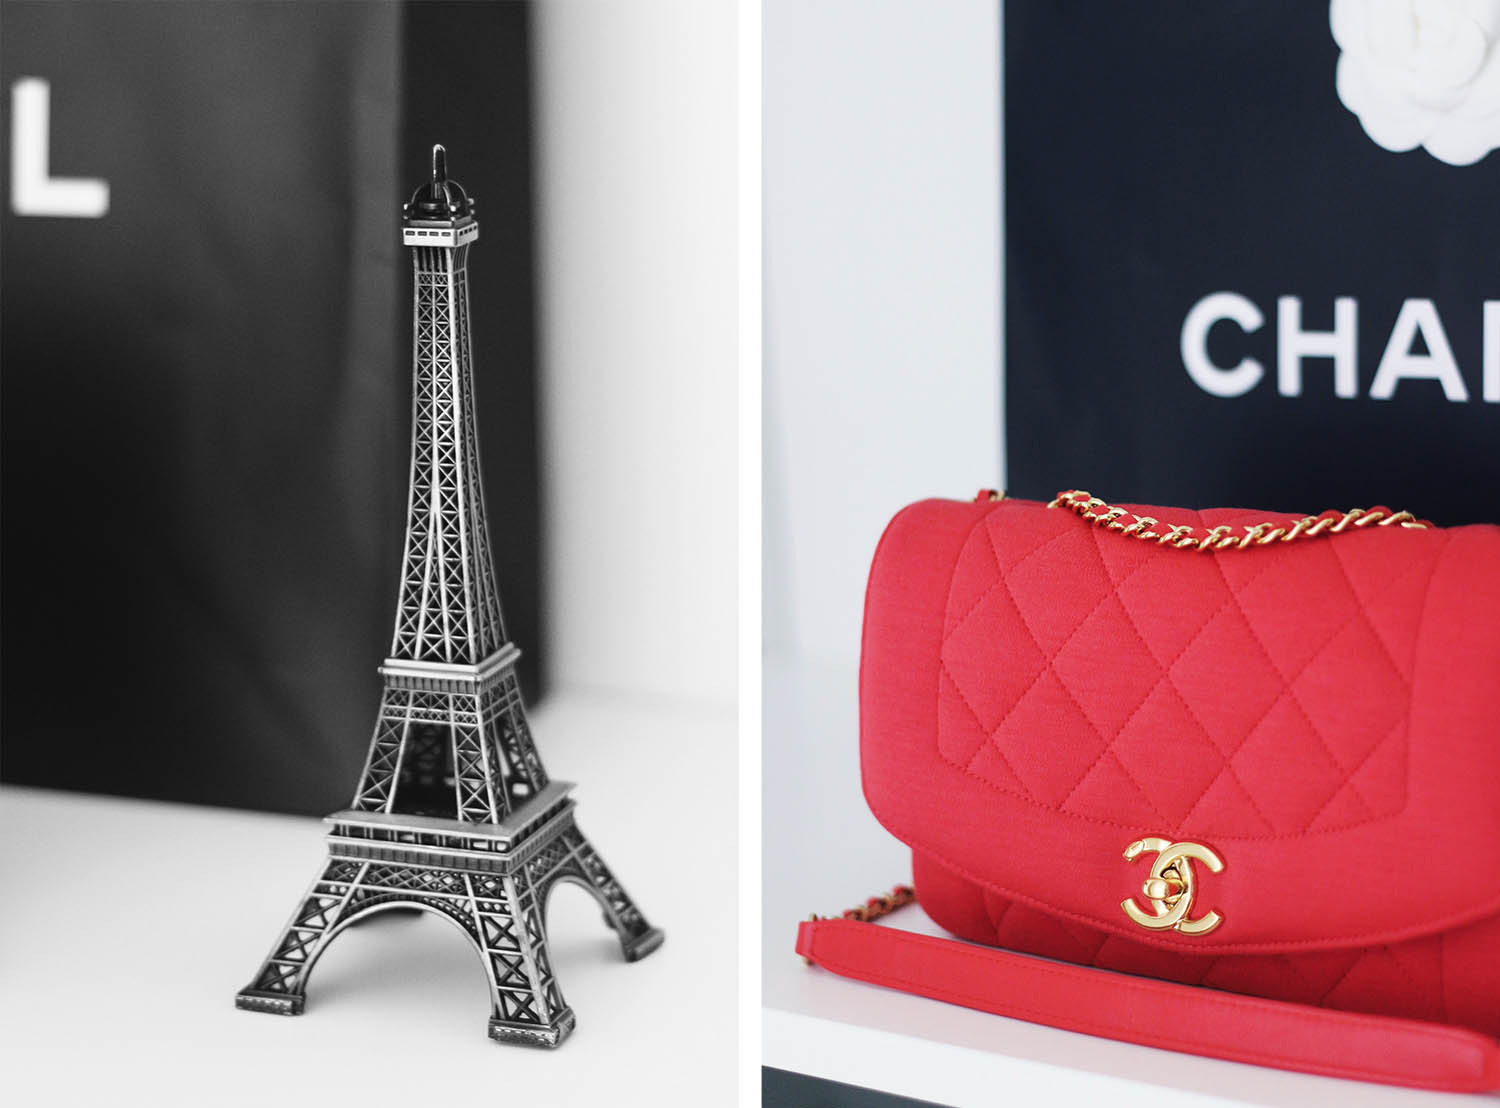 chanel-jersey-bag@2x